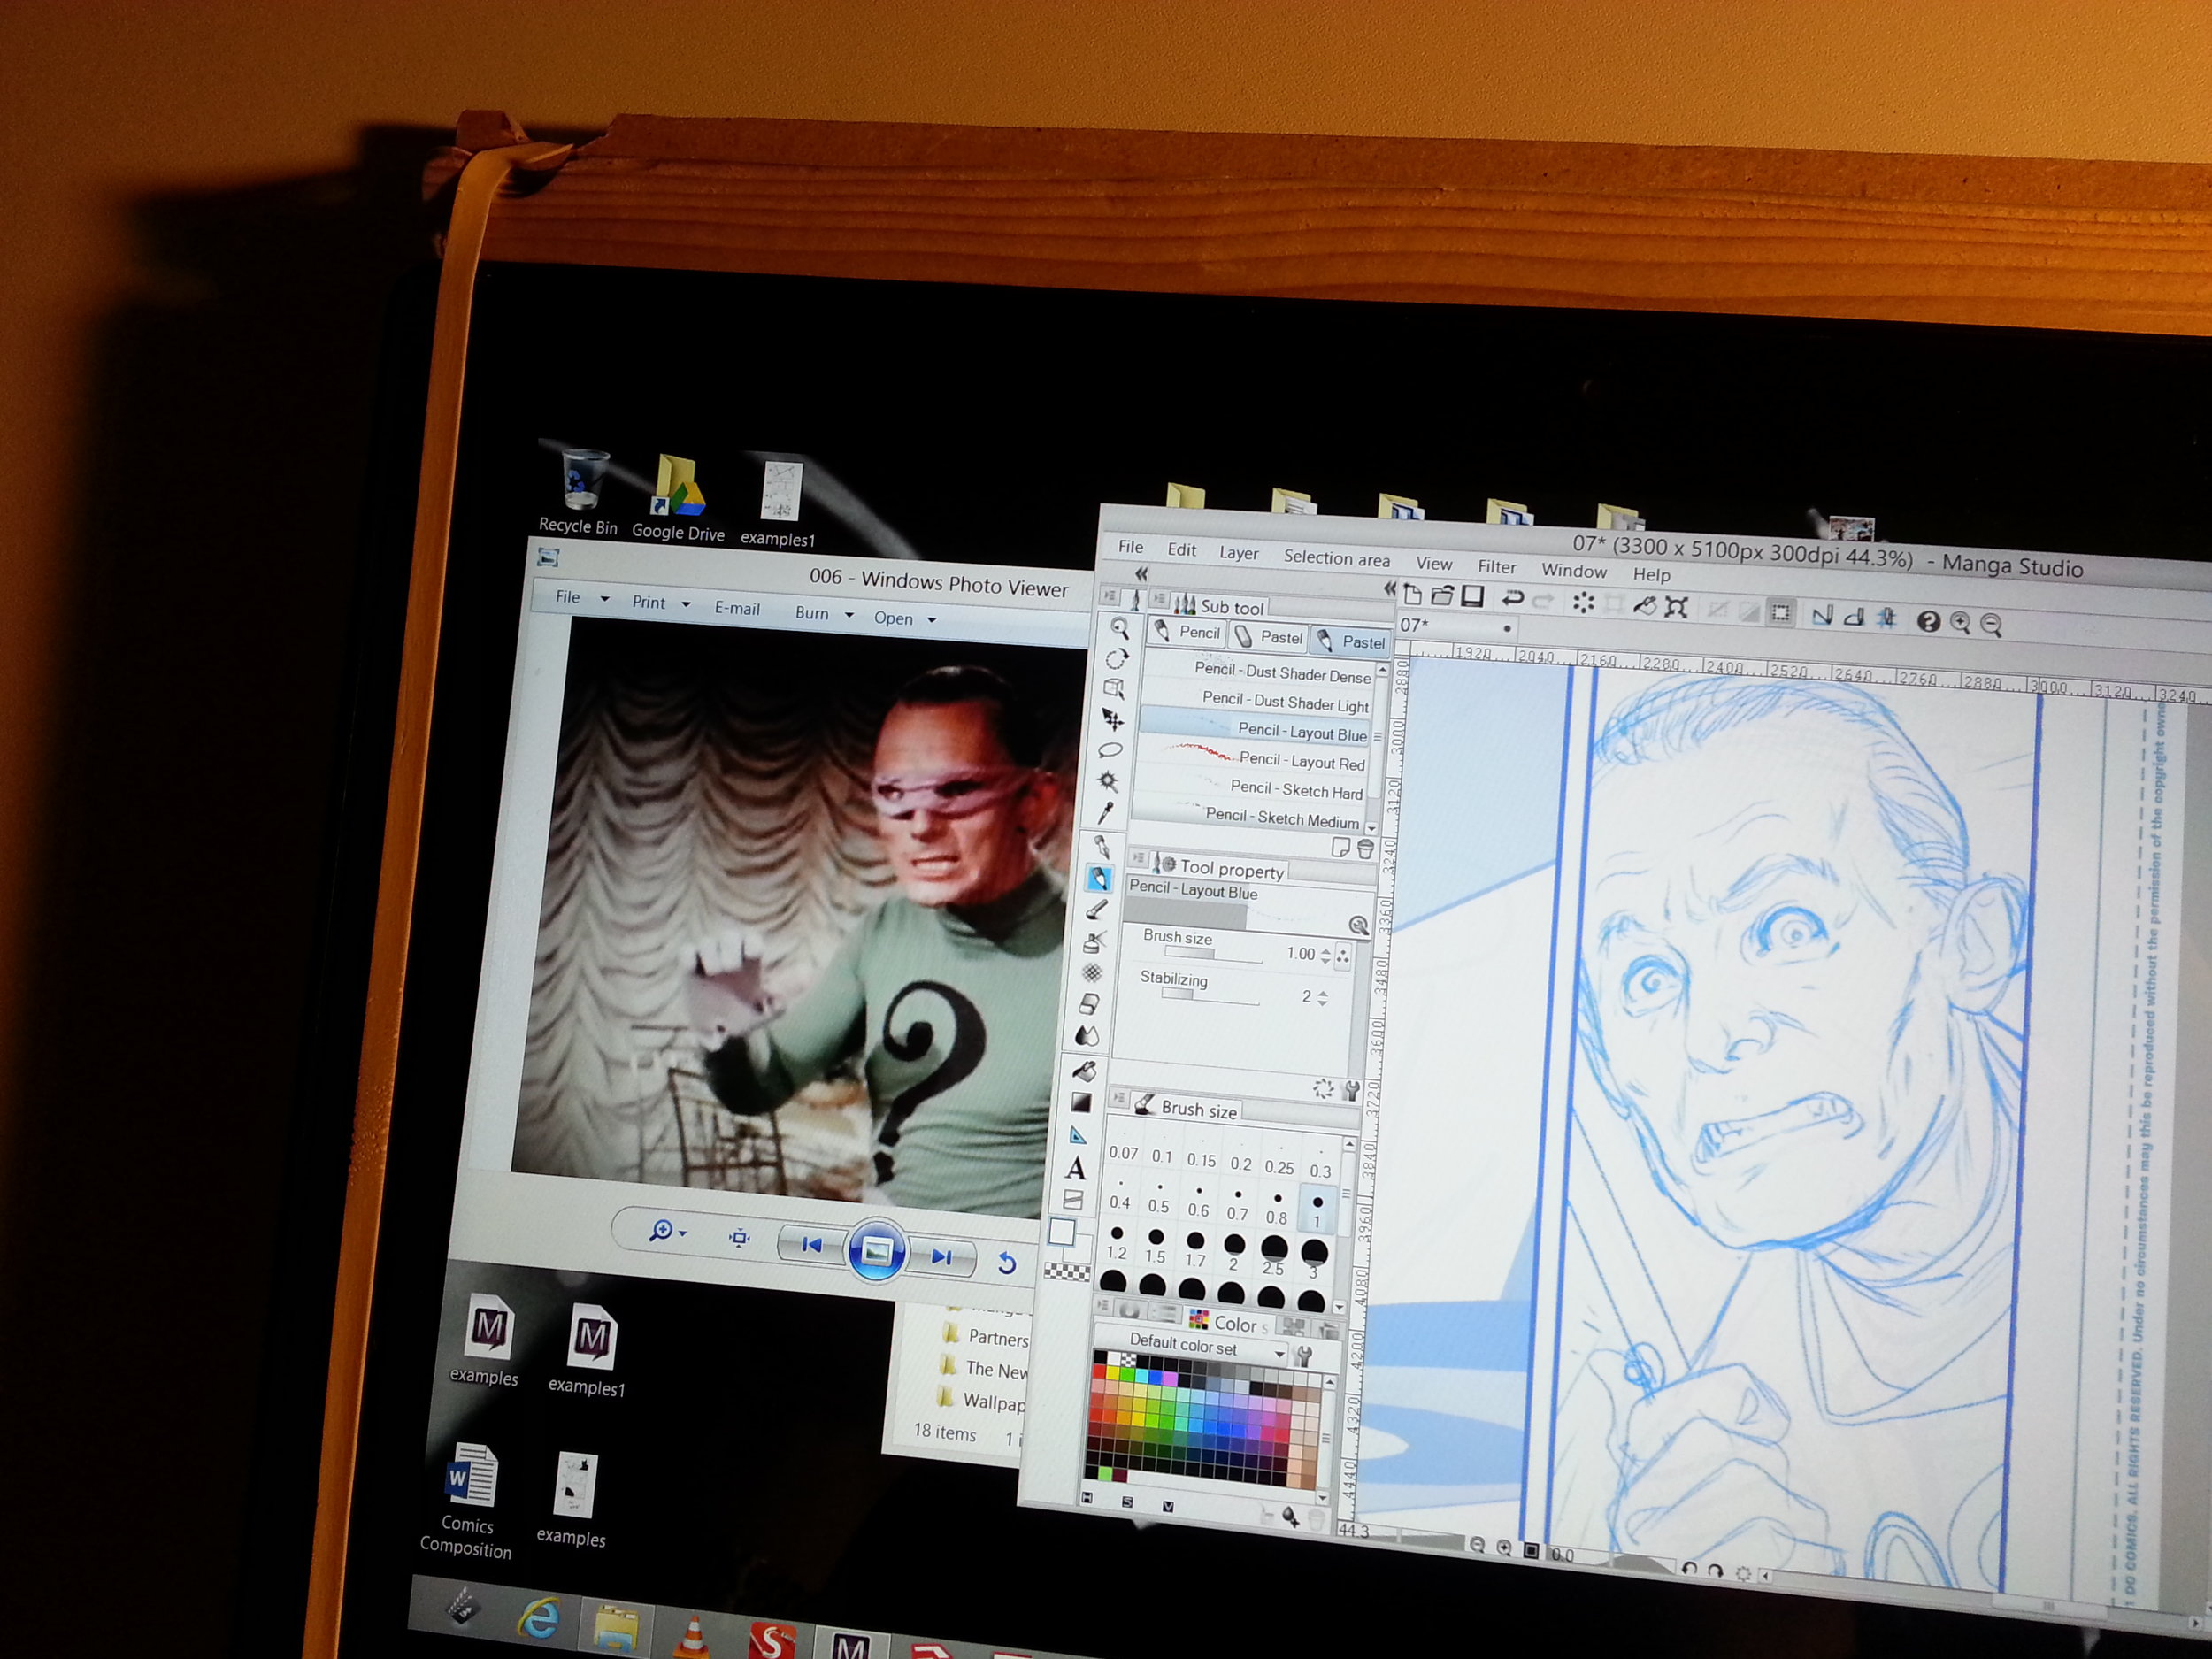 Get your Gorshin on with Manga Studio 5.